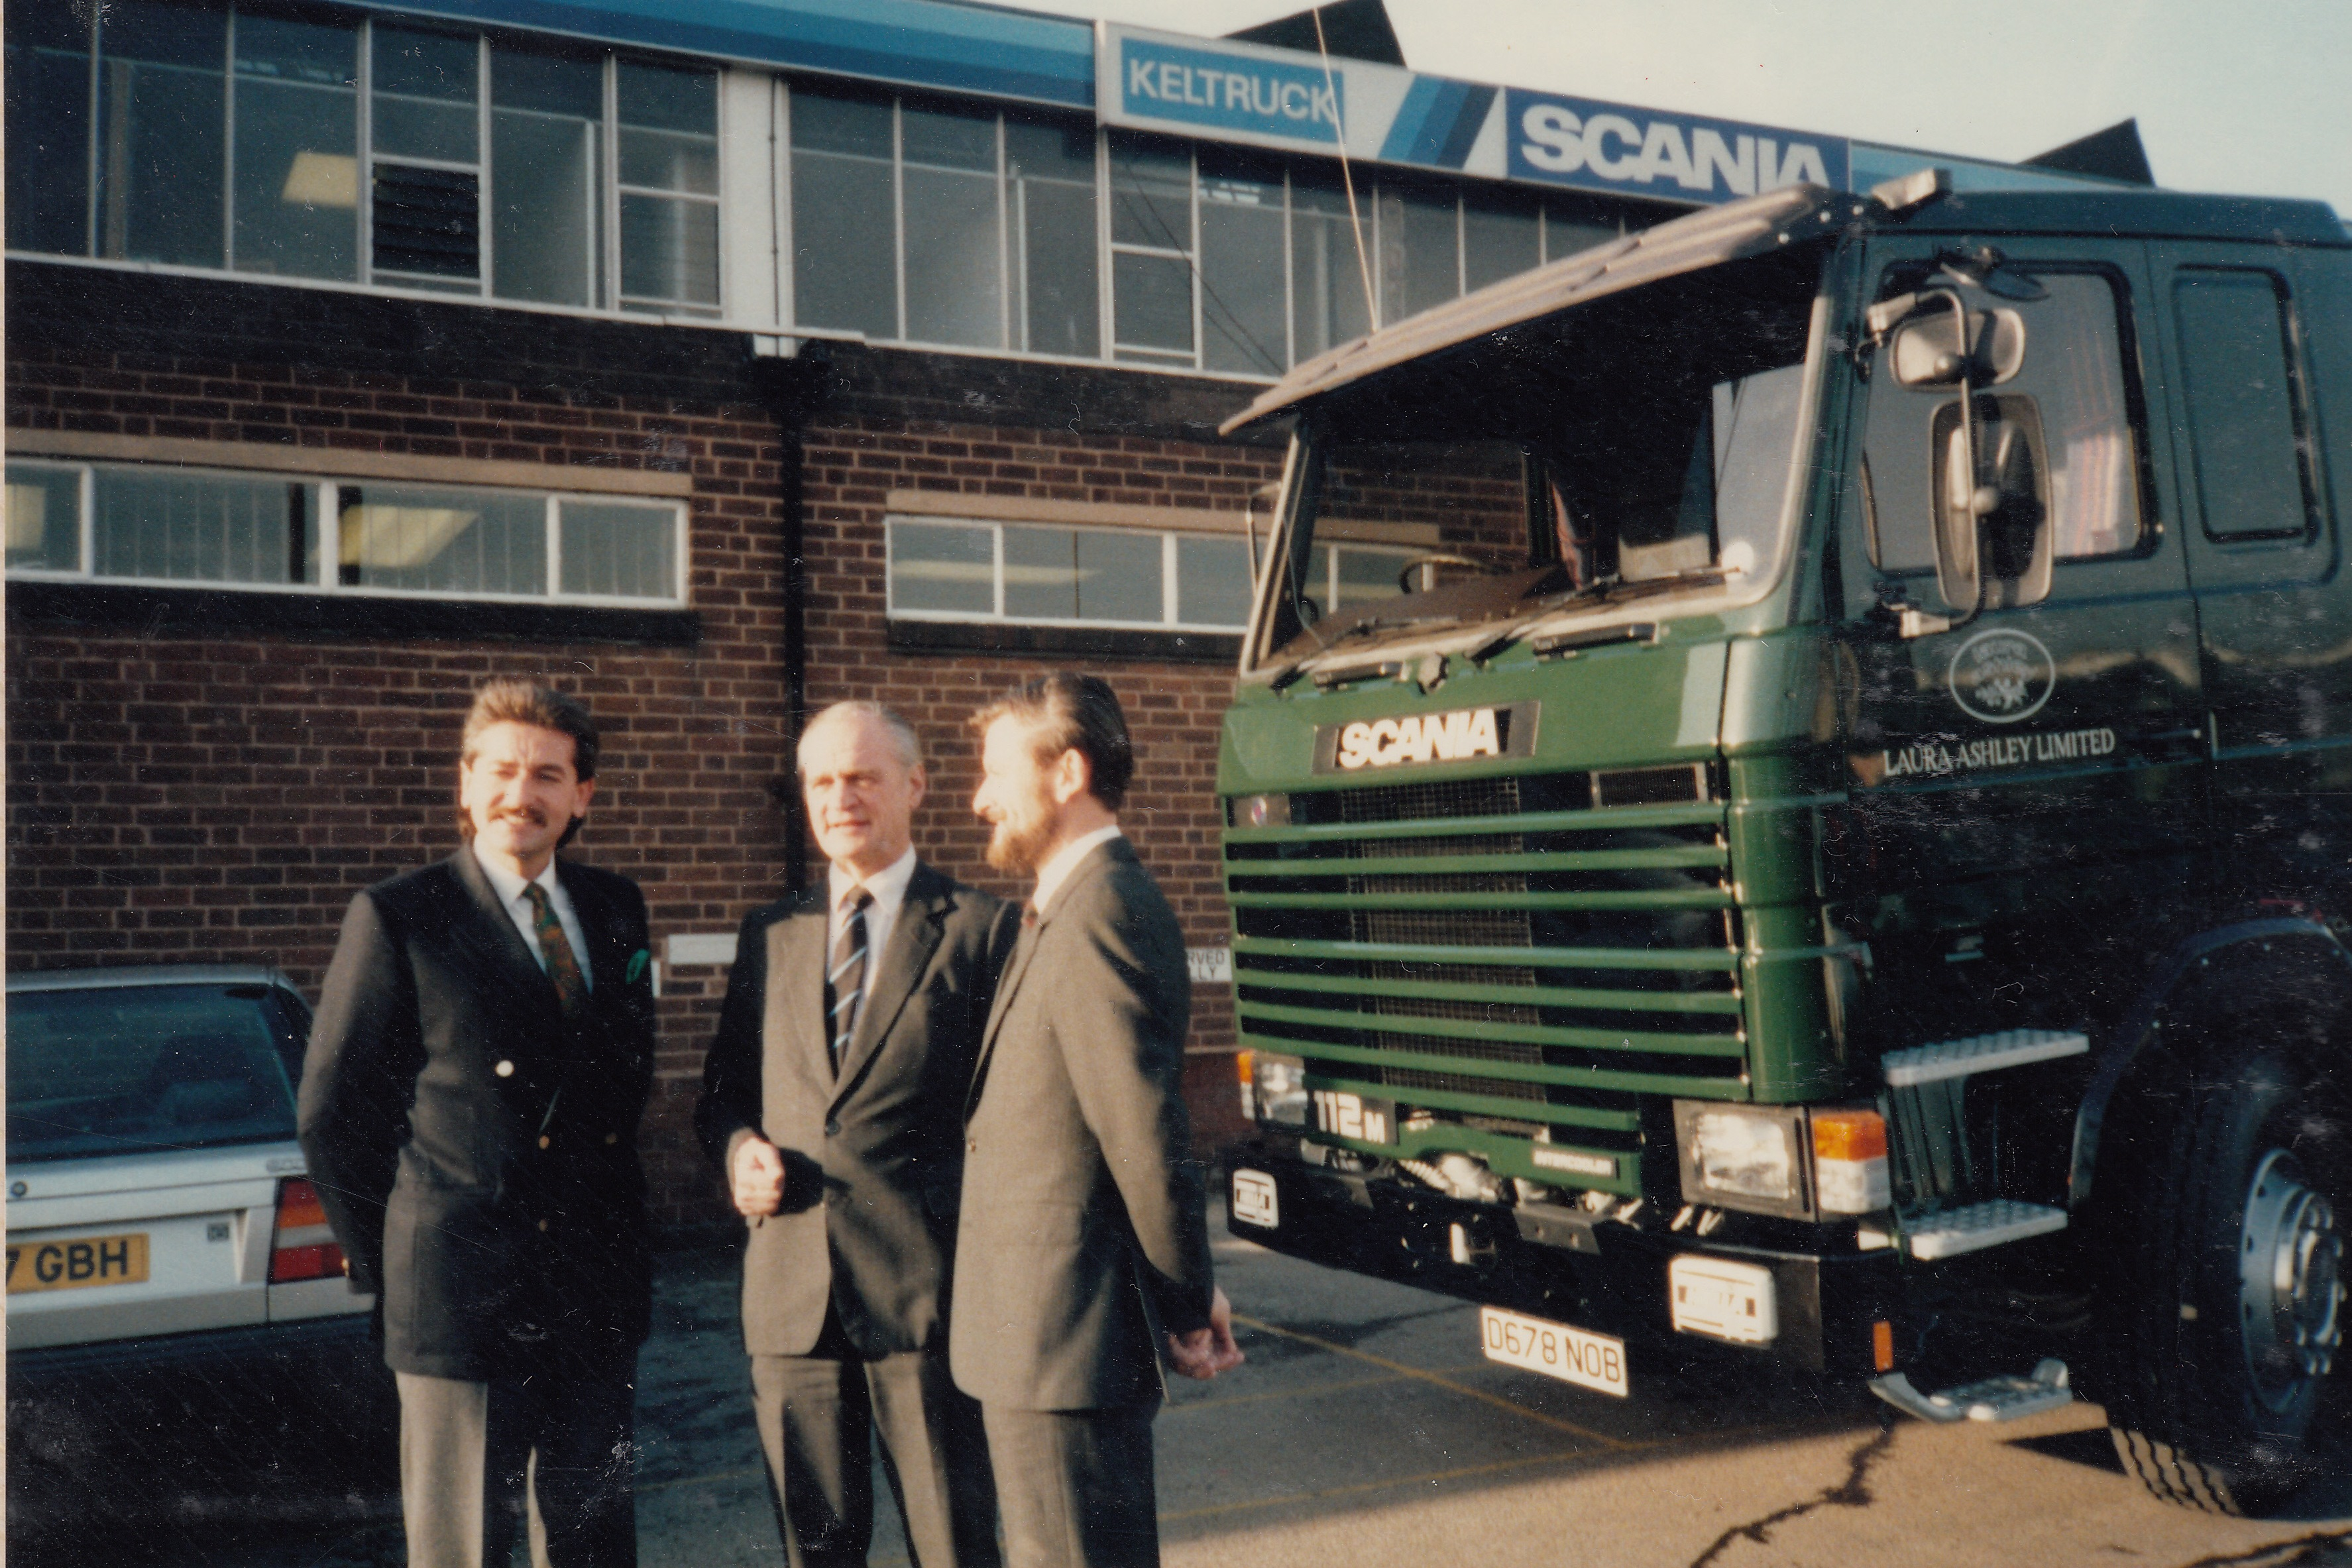 Chris Kelly (Managing Director & Dealer Principal), Anders Siewertz (Managing Director, Scania (Great Britain) Limited) & a Laura Ashley company representative celebrate the delivery of Keltruck's 1,000th Scania truck in August 1986.